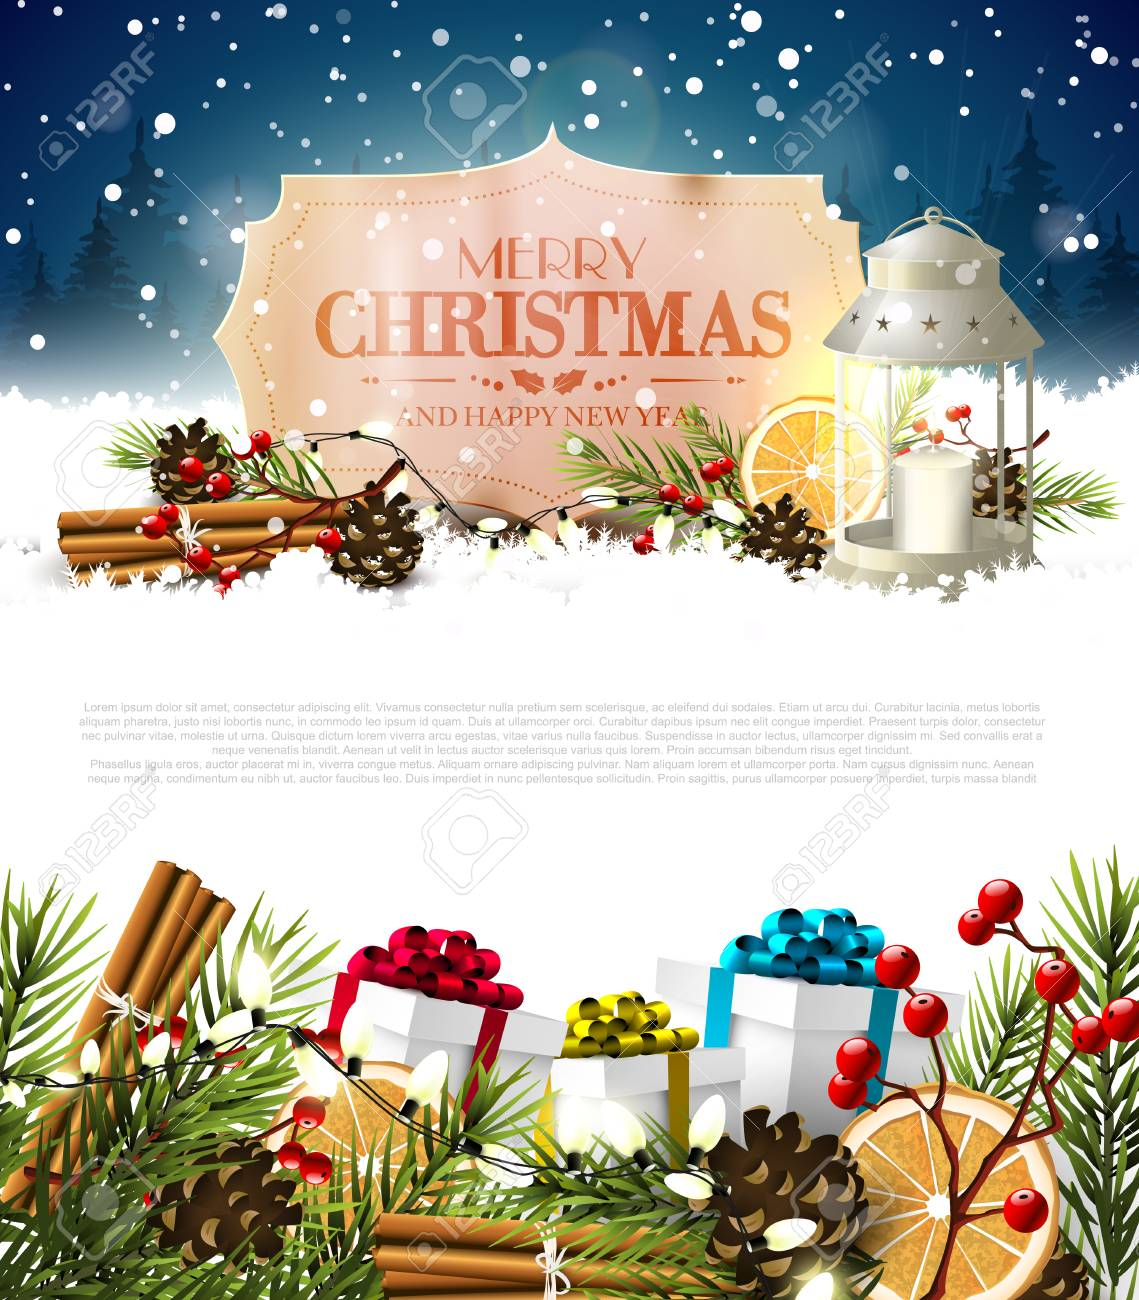 Christmas Greeting Card With Traditional Decorations And Vintage ...